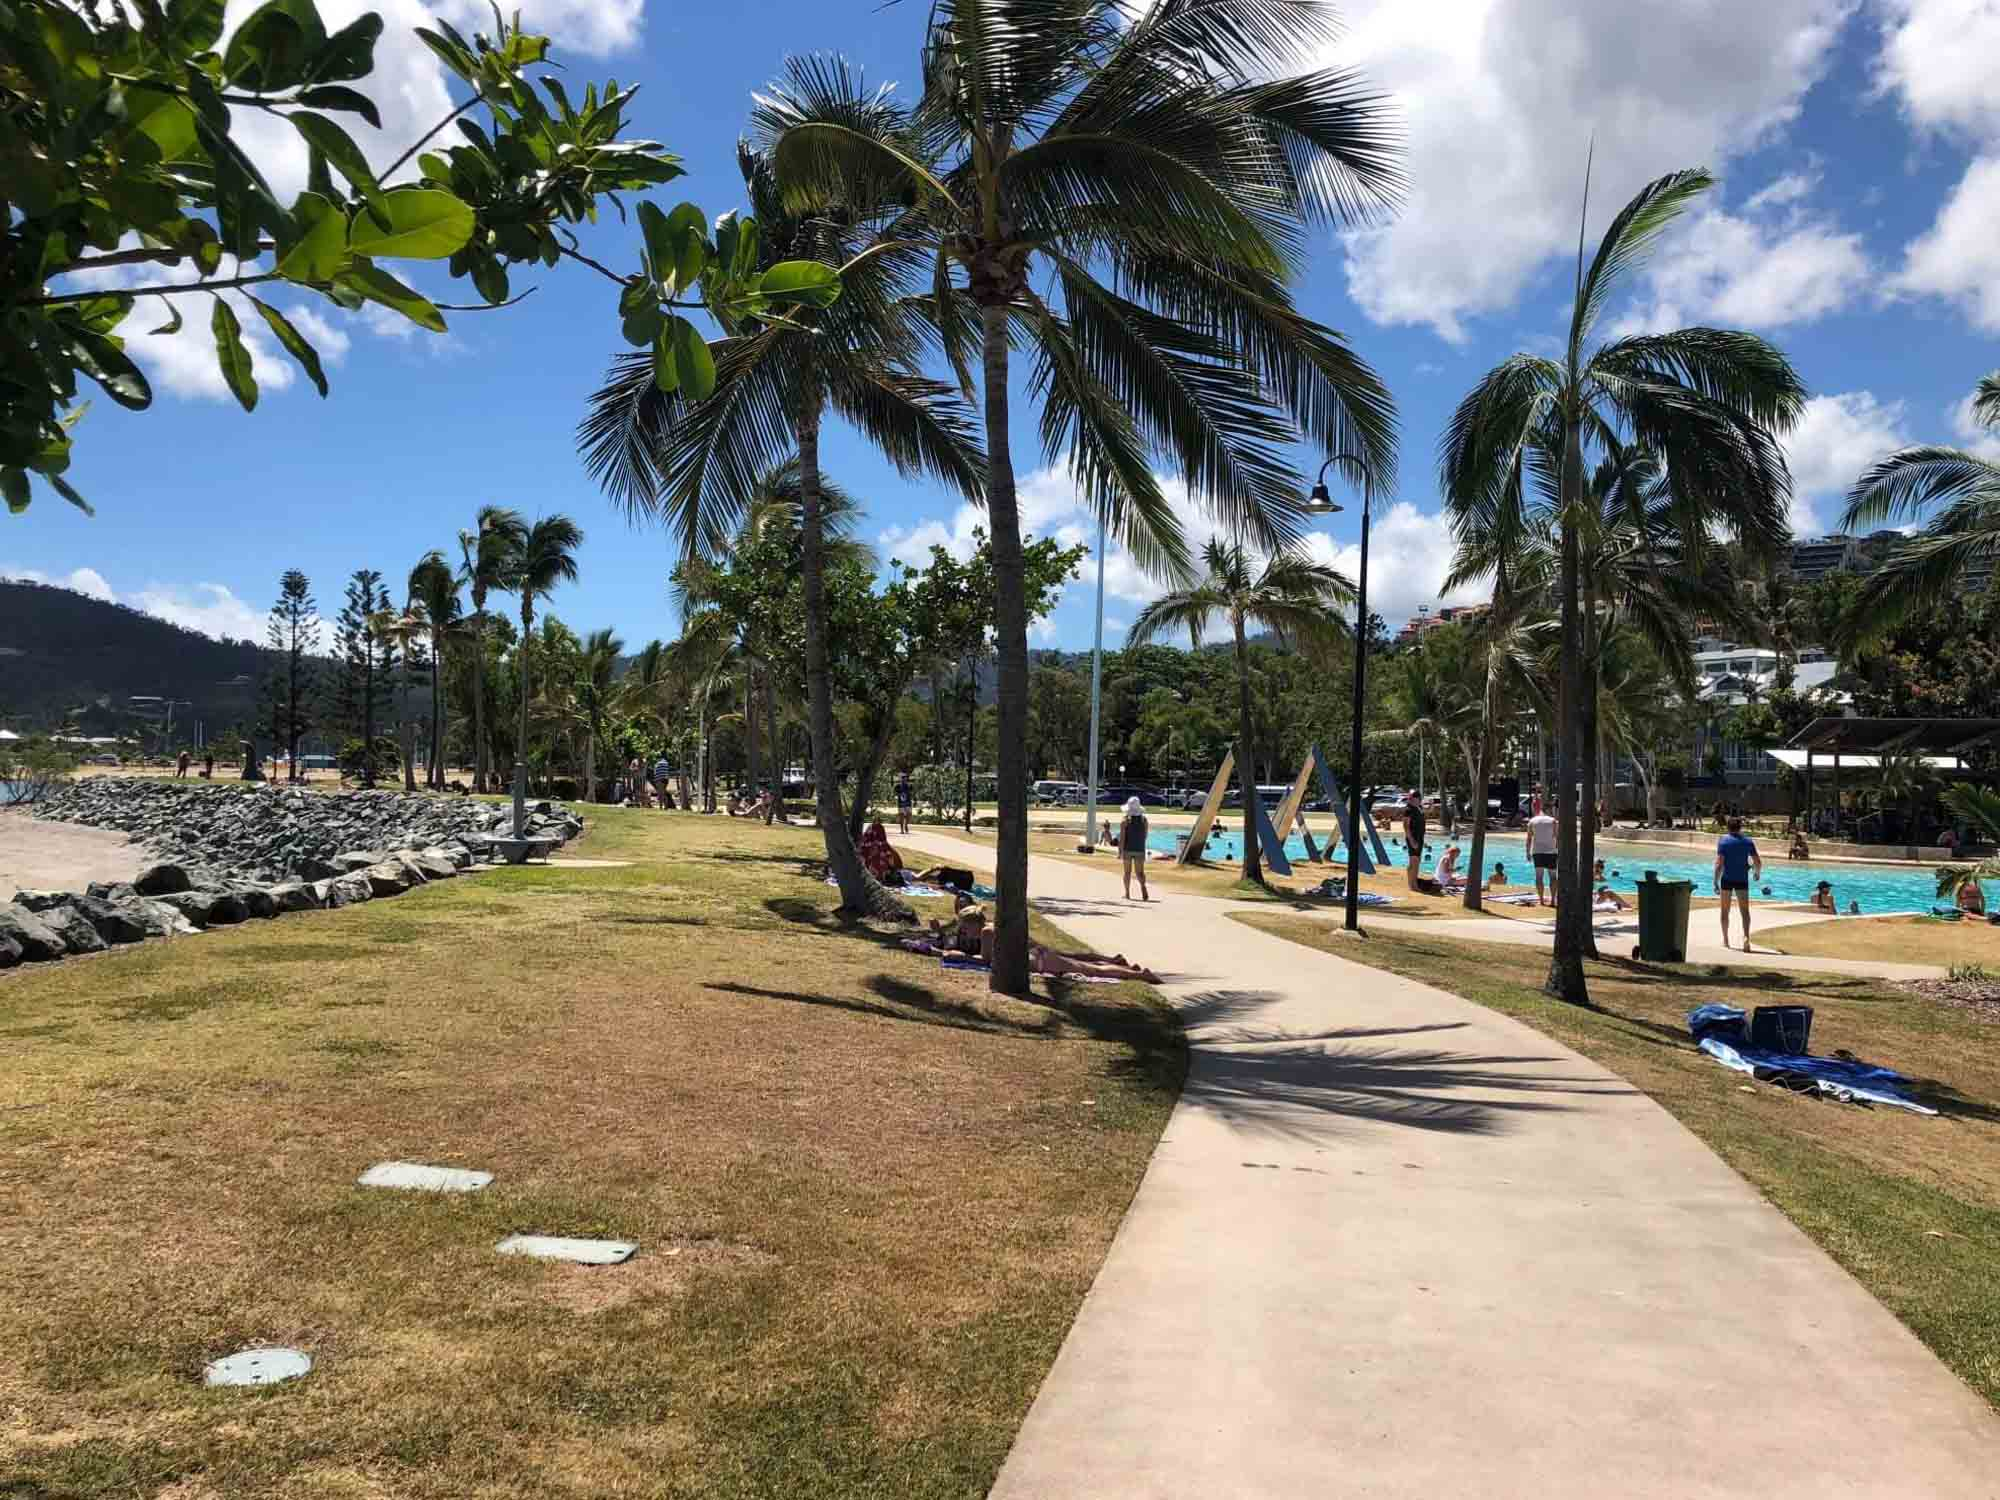 Top things to do in Airlie Beach - Roteiro Completo em Airlie Beach: Airlie Lagoon